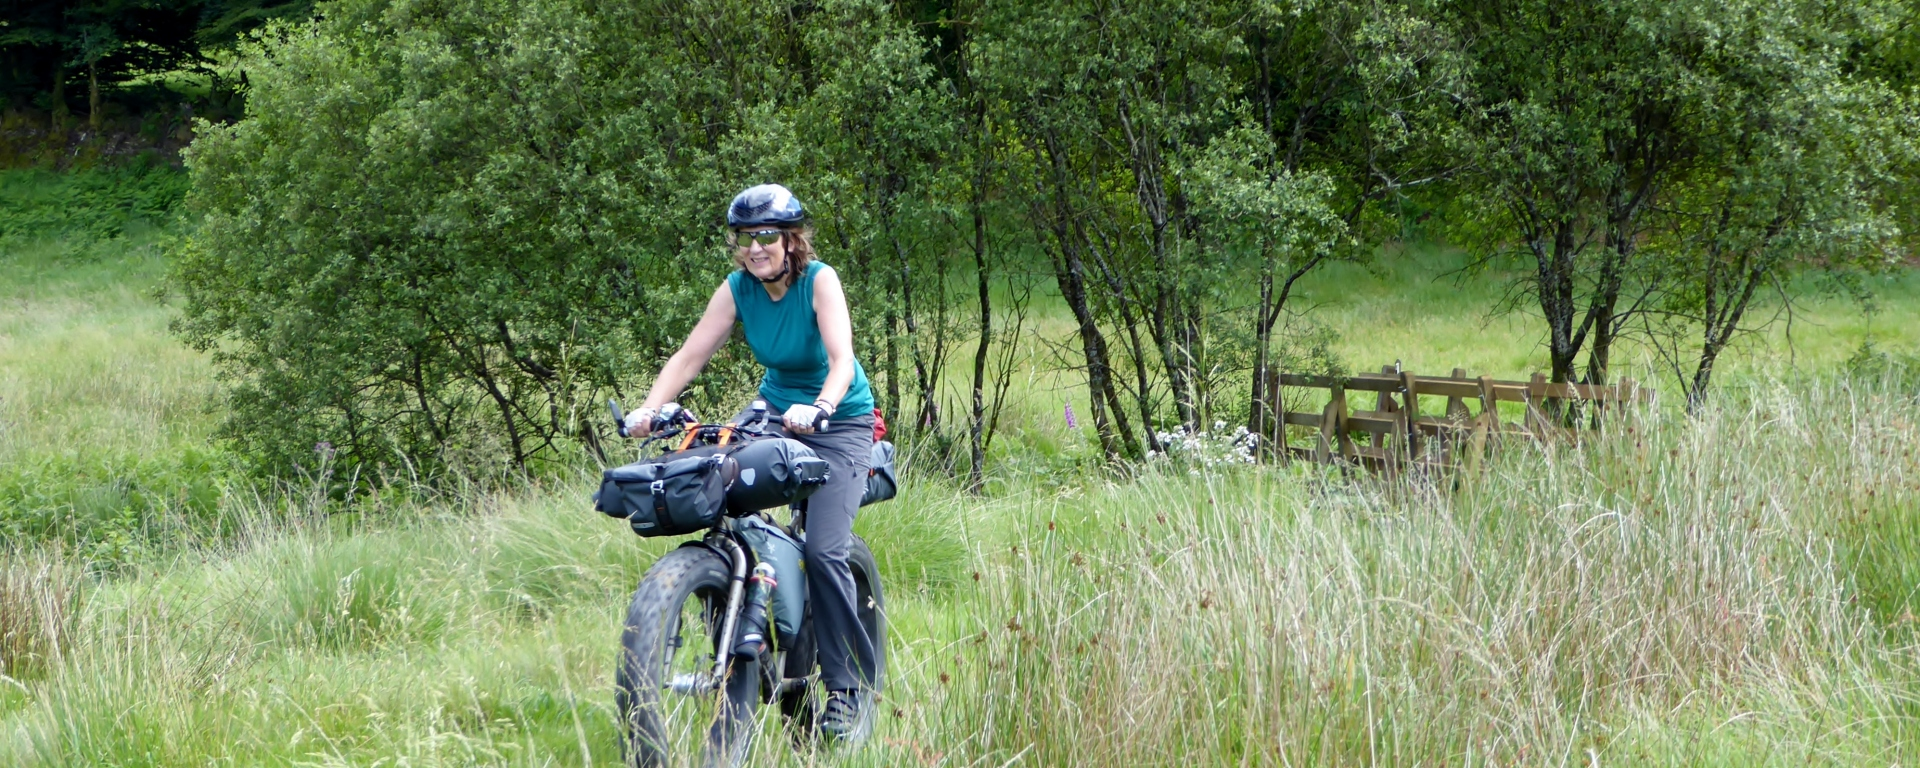 f6fa9b6044 Fat Biking weekend on Exmoor – Bike-packing – WraggeBag Cyclists